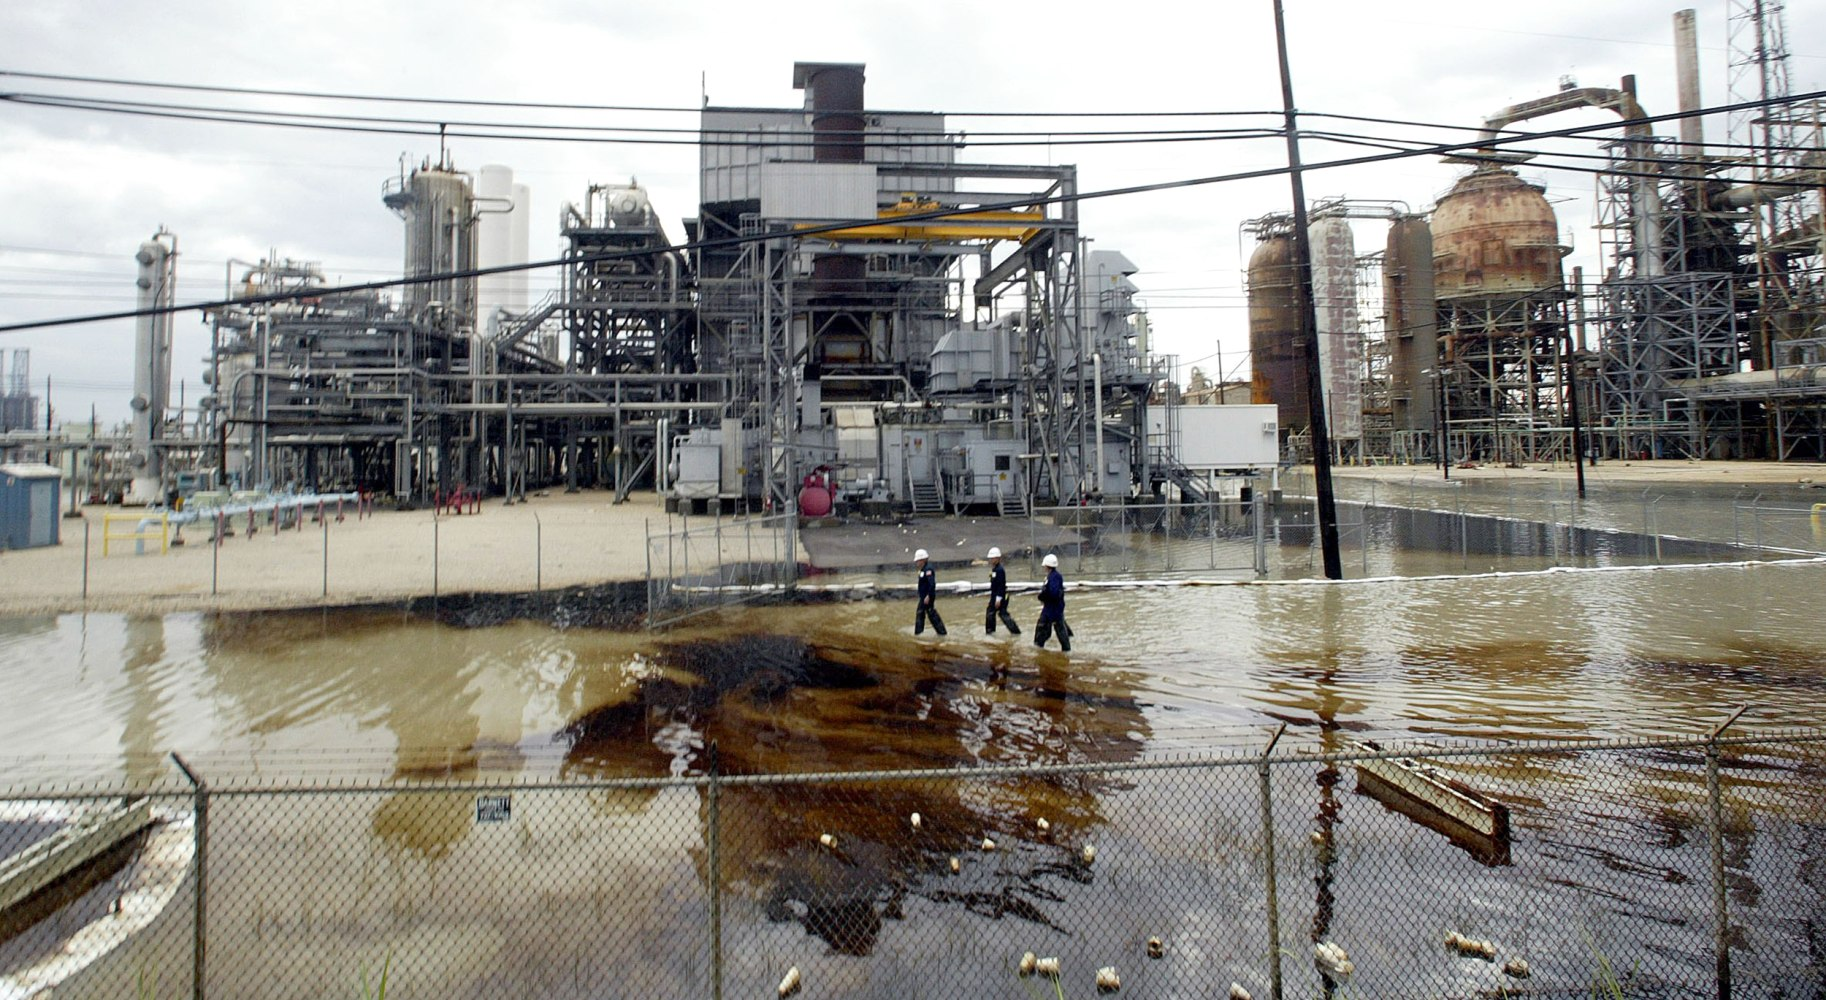 Us Oil Refinery Map Gas Prices Rise As Hurricane Harvey Catches Oil Companies By